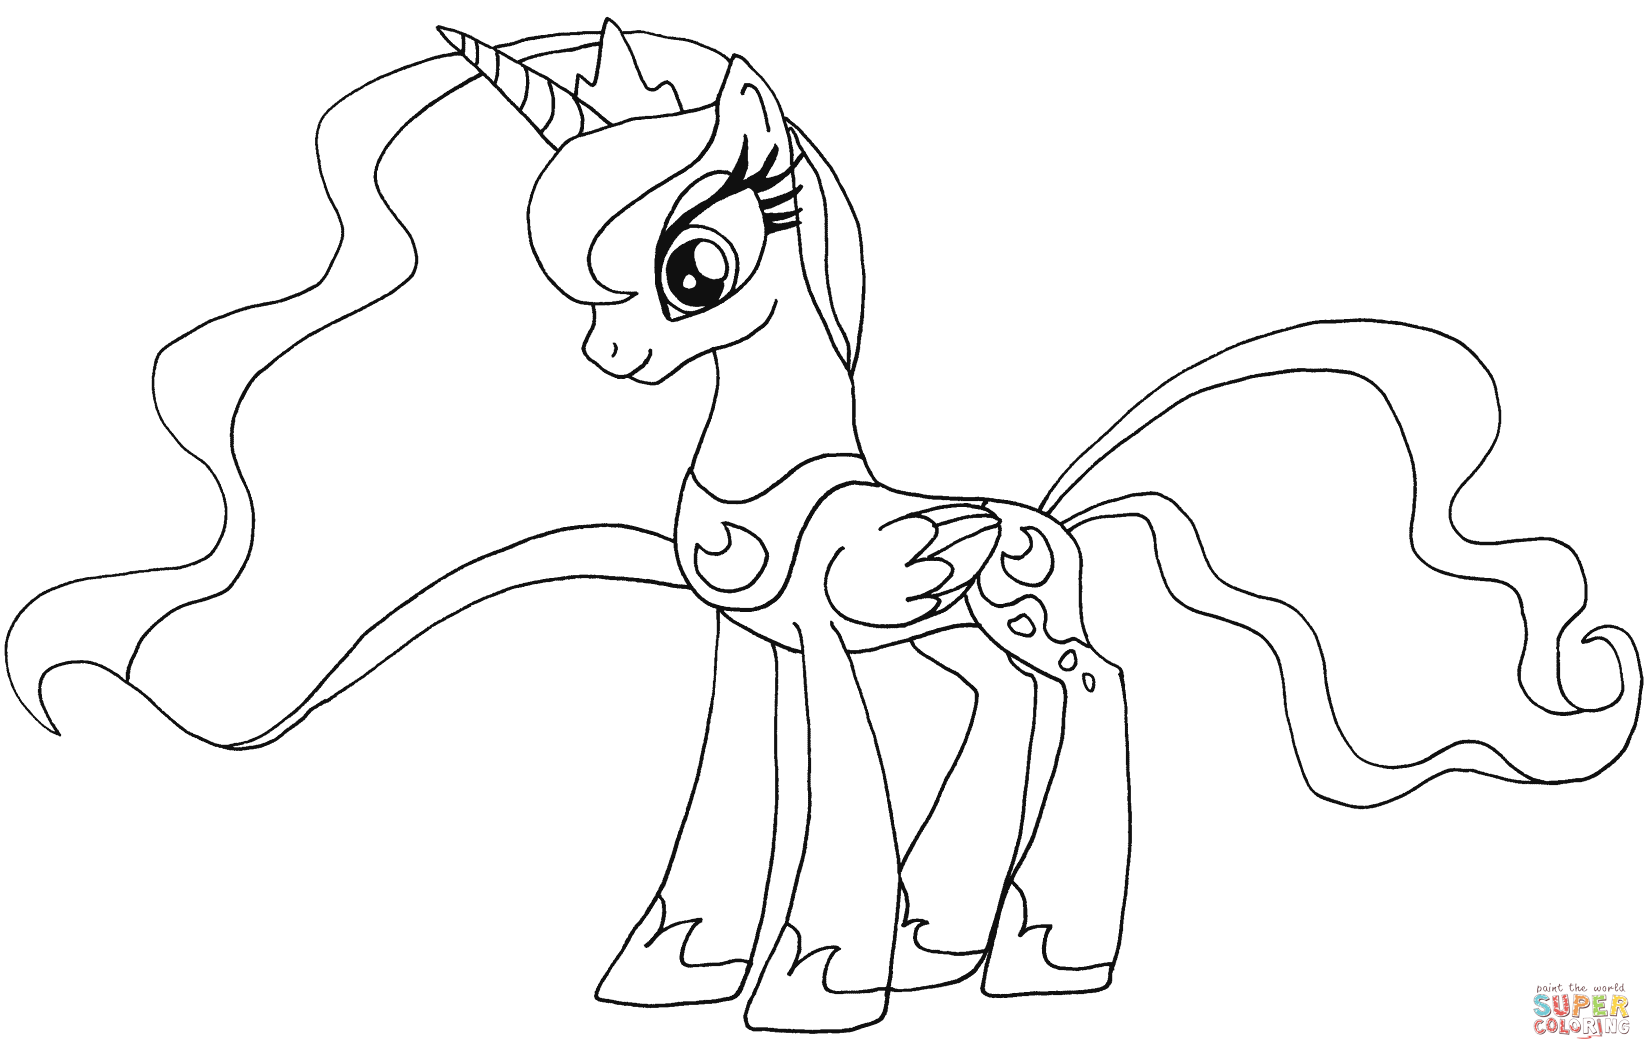 My Little Pony Princess Luna Coloring Page Free Printable Coloring Pages My Little Pony Coloring My Little Pony Printable Princess Coloring Pages